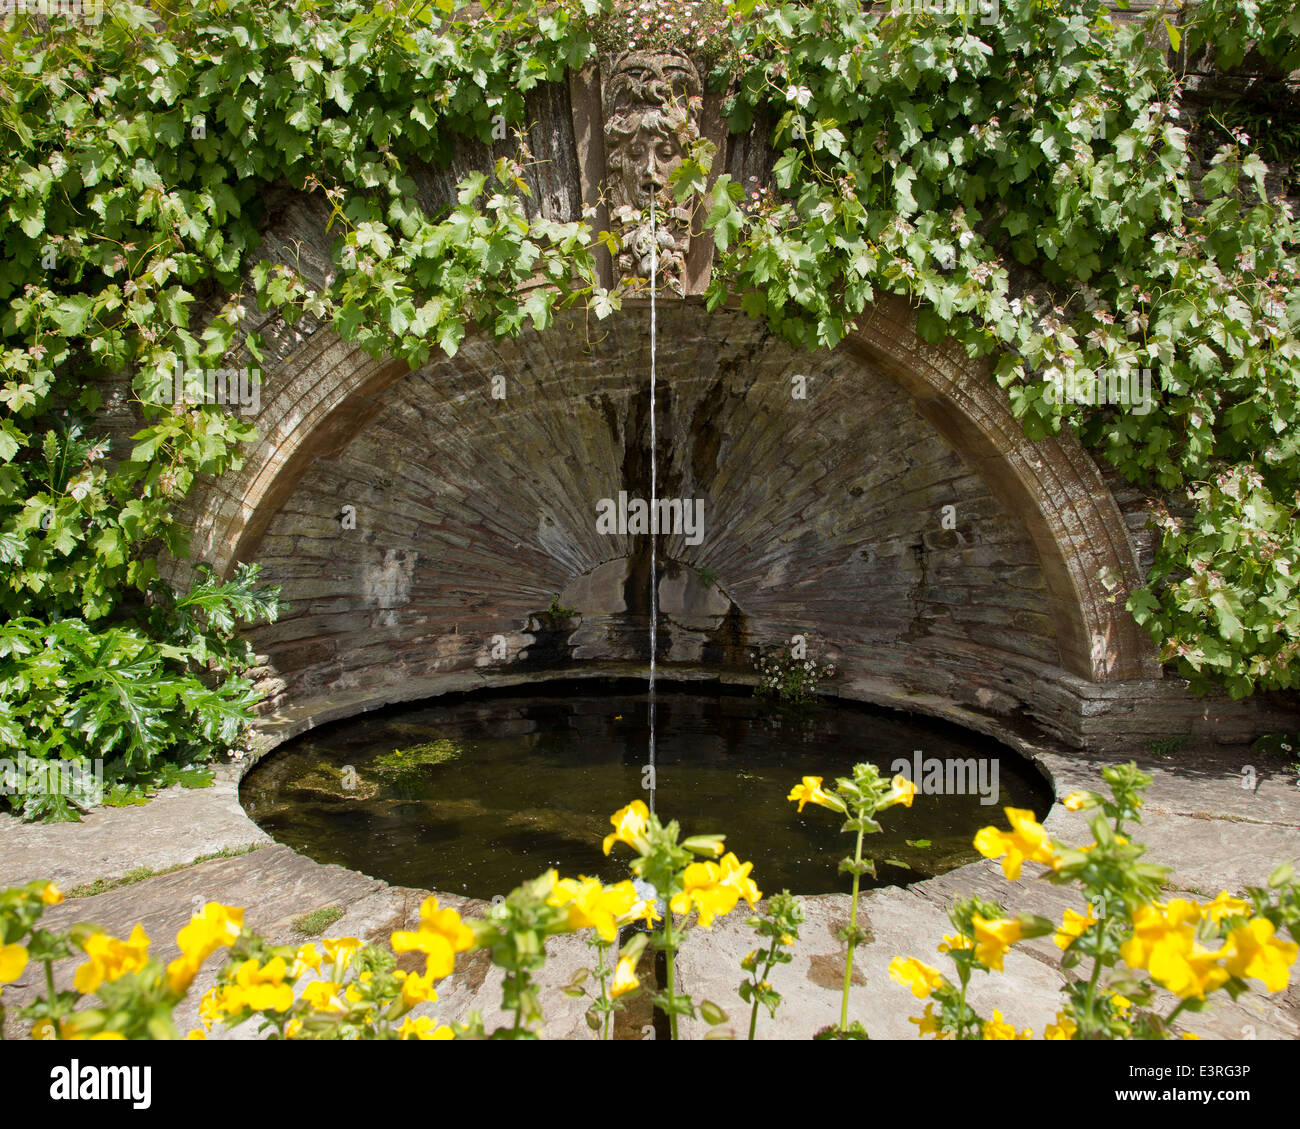 Fountain head in formal garden of Hestercombe House, Somerset. - Stock Image